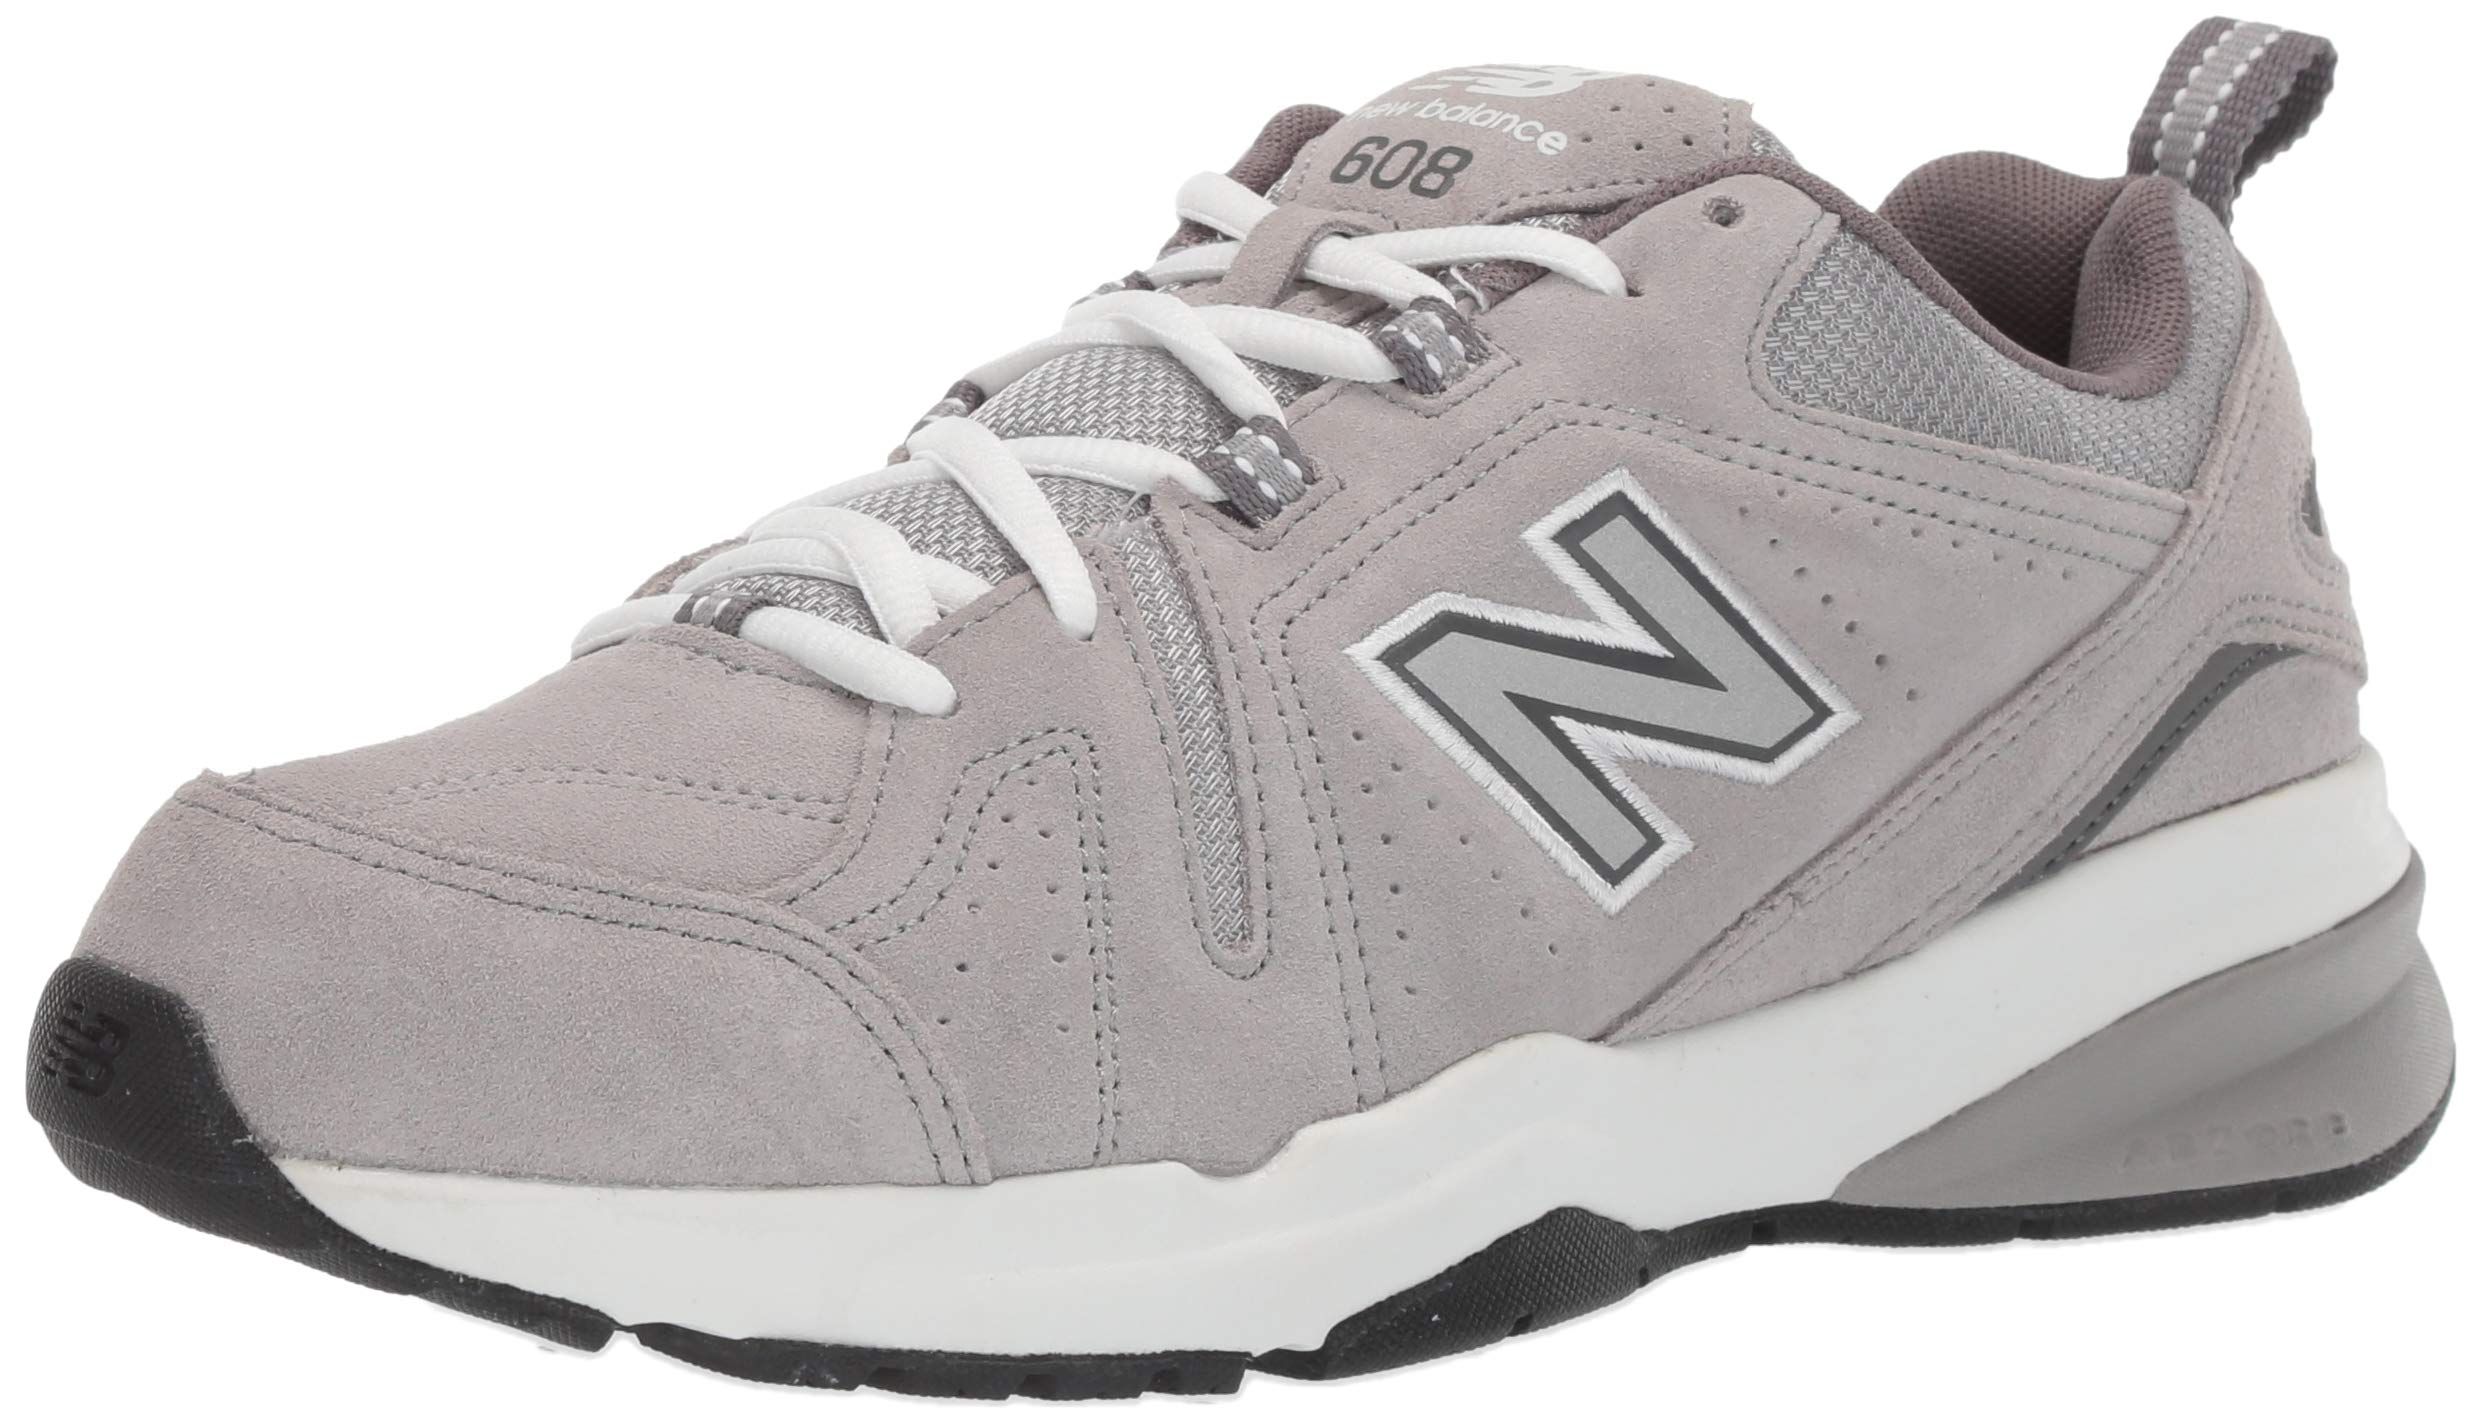 New Balance Men's 608v5 Casual Comfort Running Shoe, Grey Suede, 10 D US by New Balance